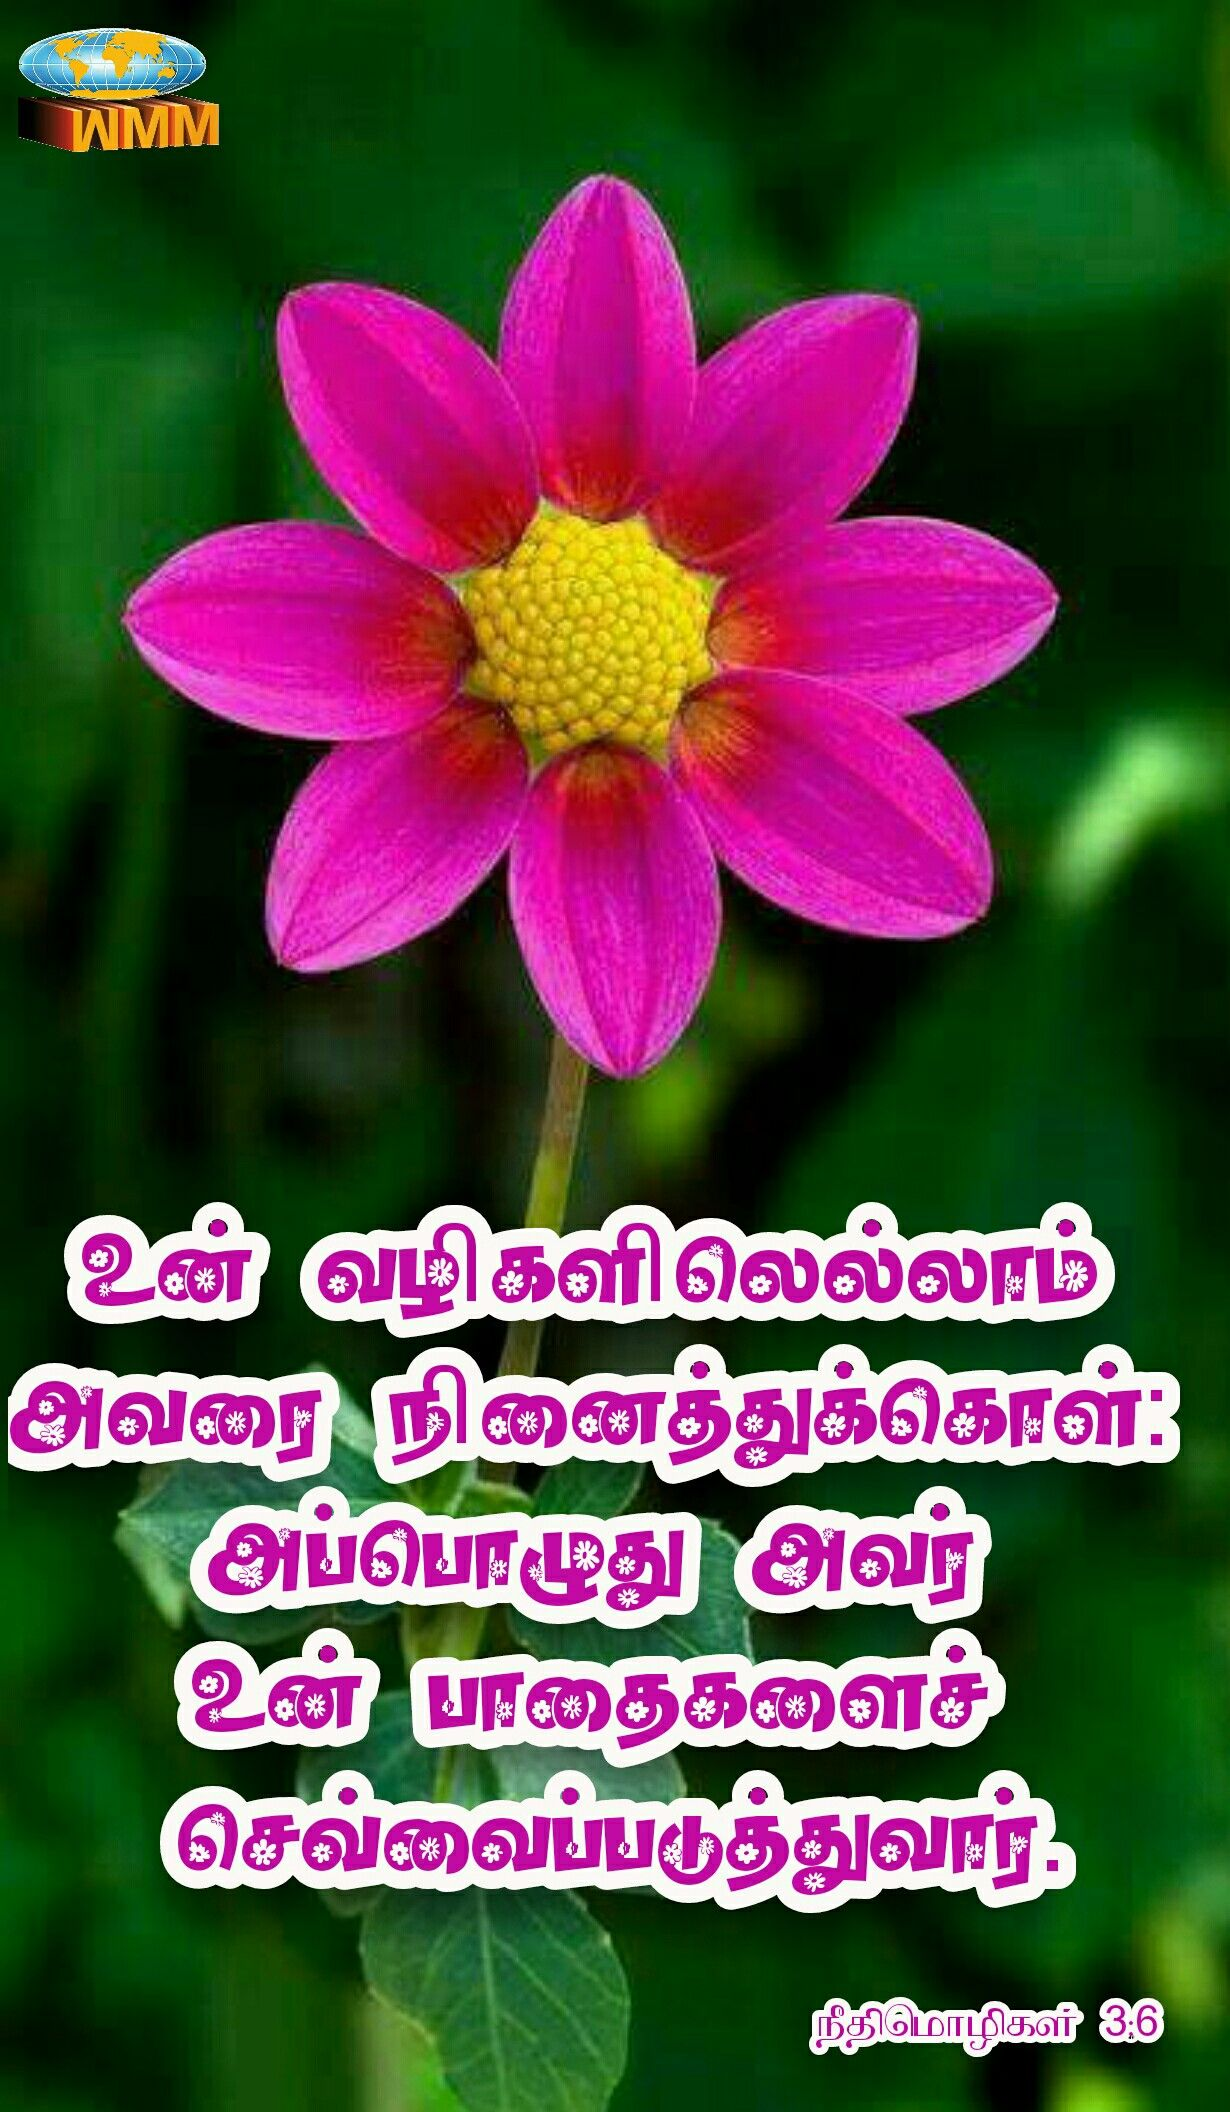 Pin by Charles MSK India on Bible Verse Tamil bible